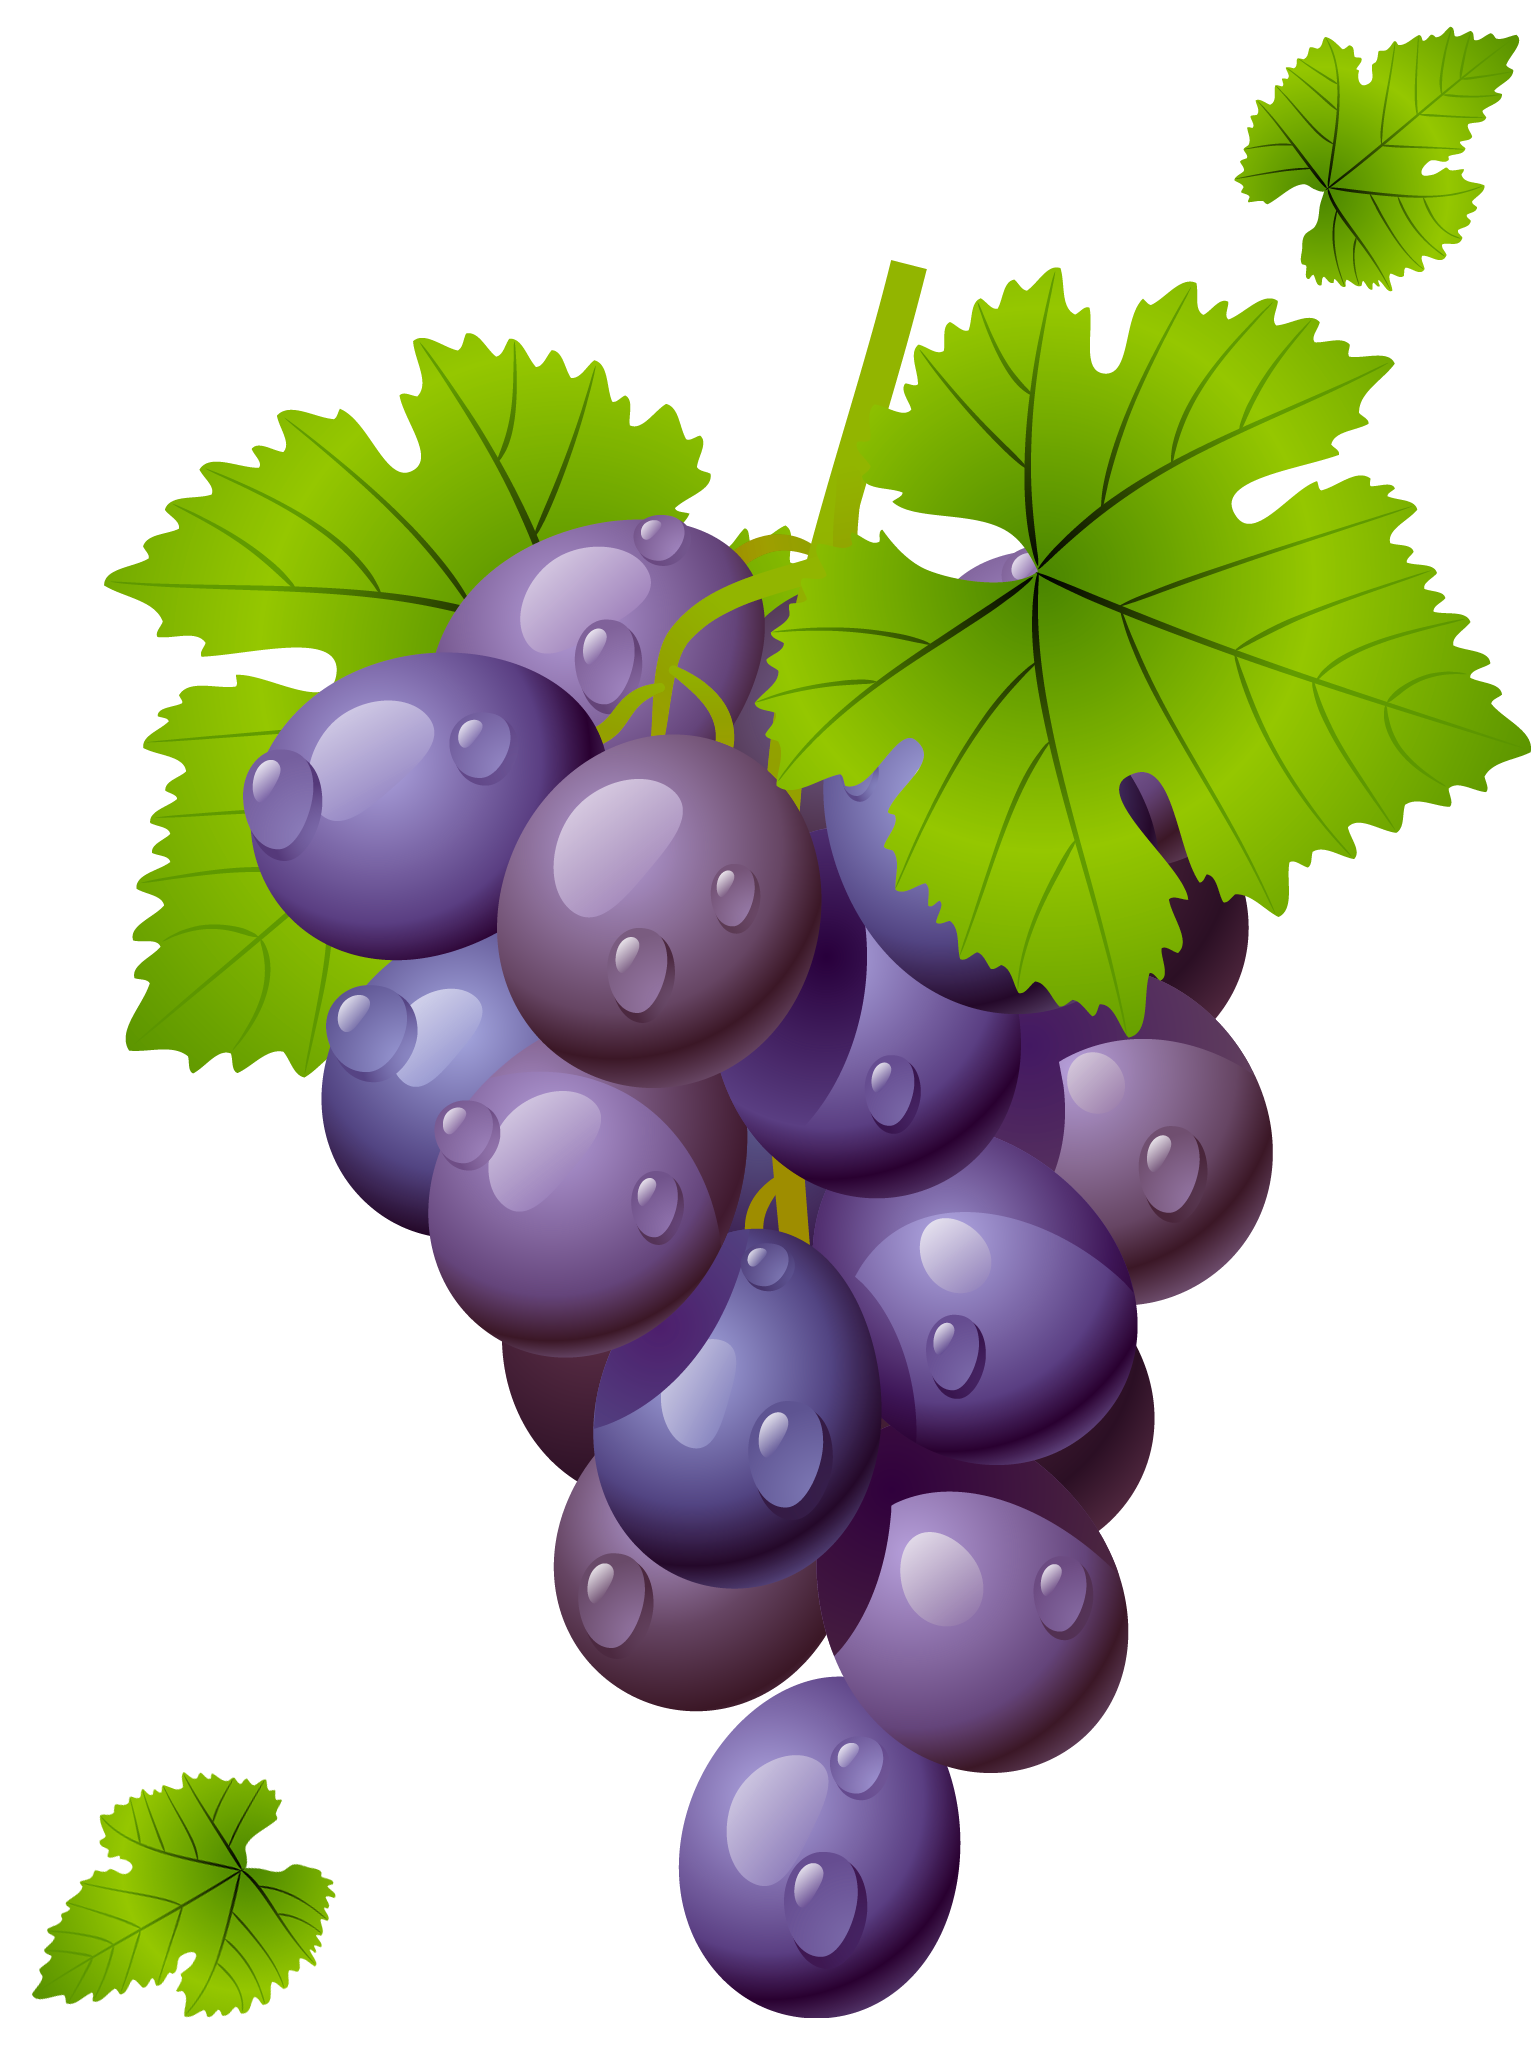 2 clipart grape. Grapes grapeclipart fruit clip